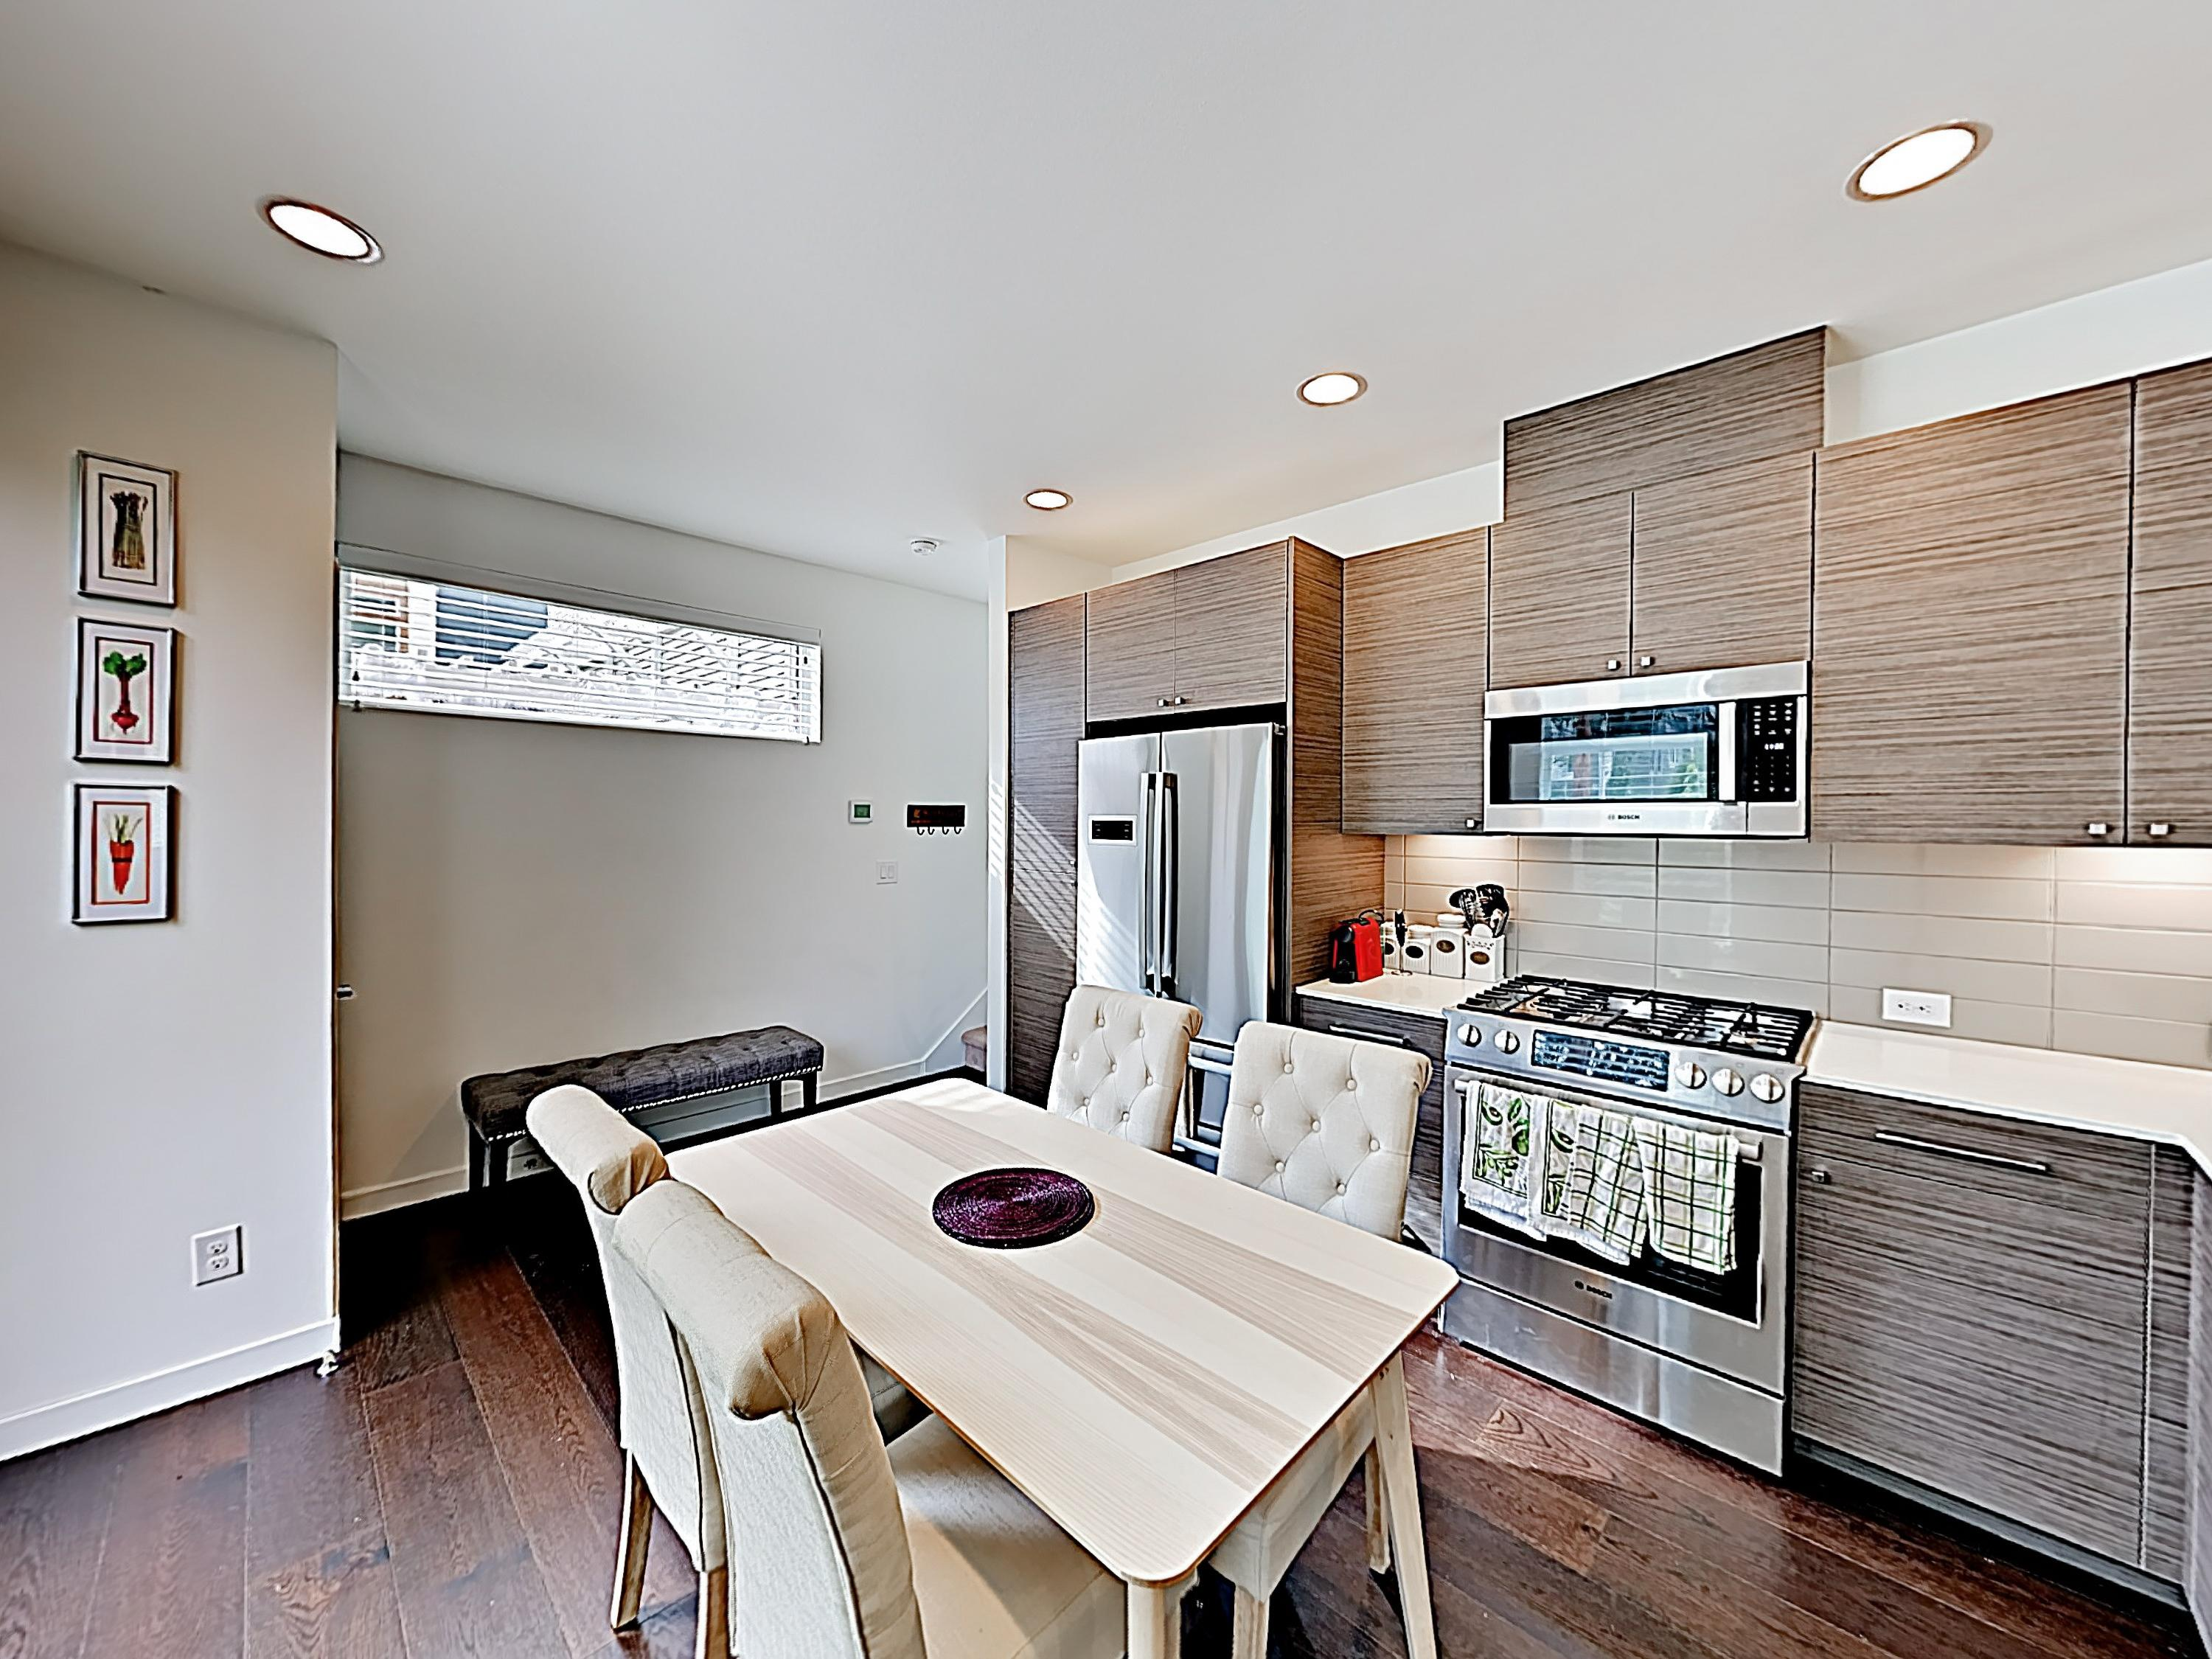 The modern kitchen is equipped with a full suite of stainless steel appliances.